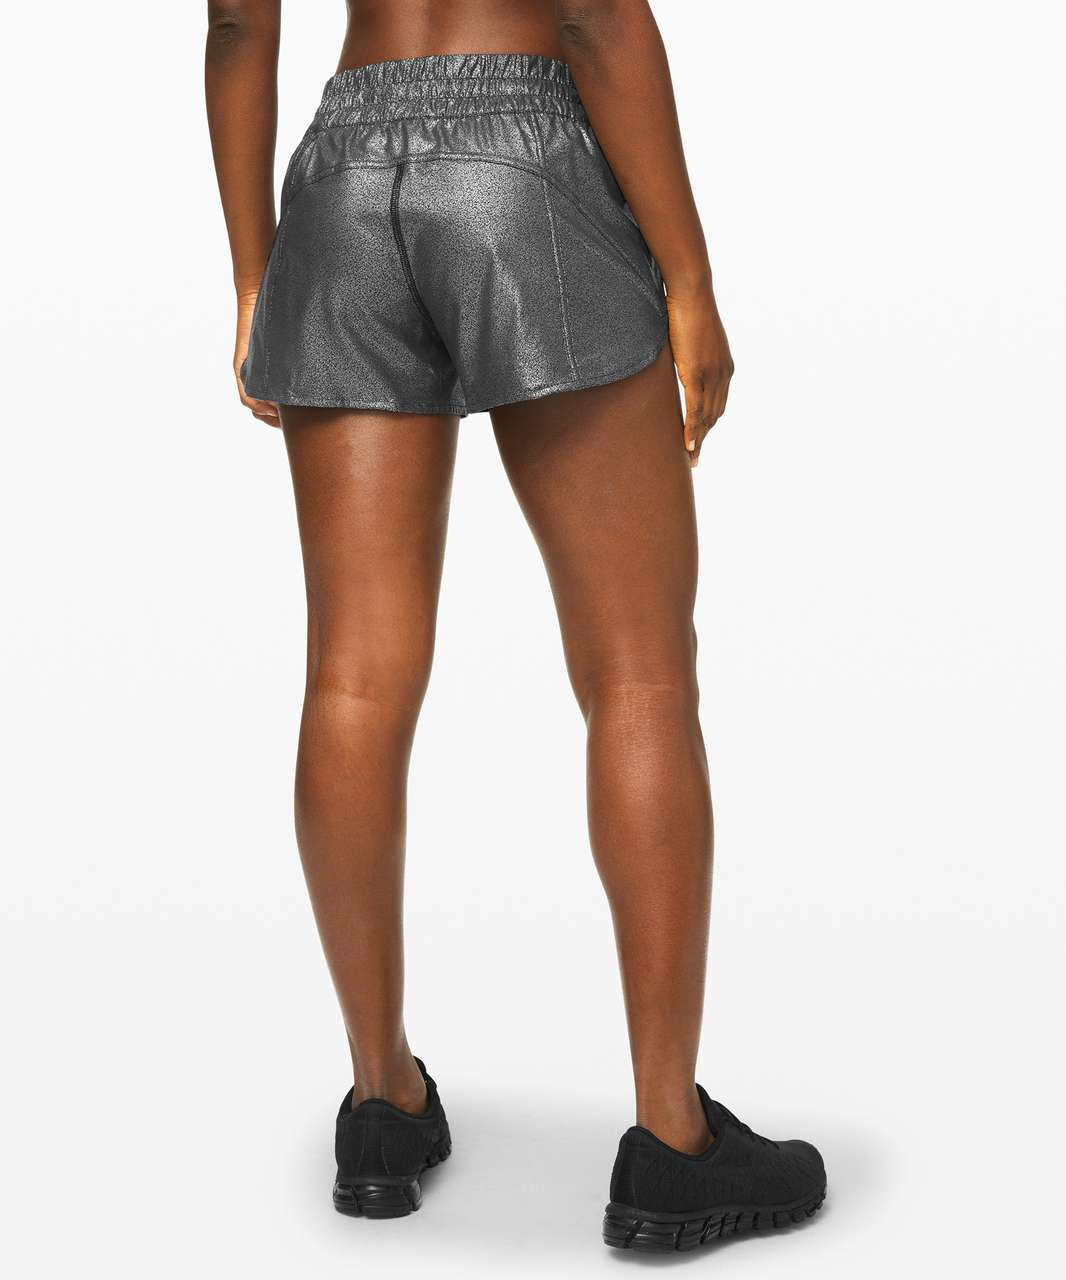 "Lululemon Tracker Short V *4"" Foil - Luminosity Foil Print Black Silver"